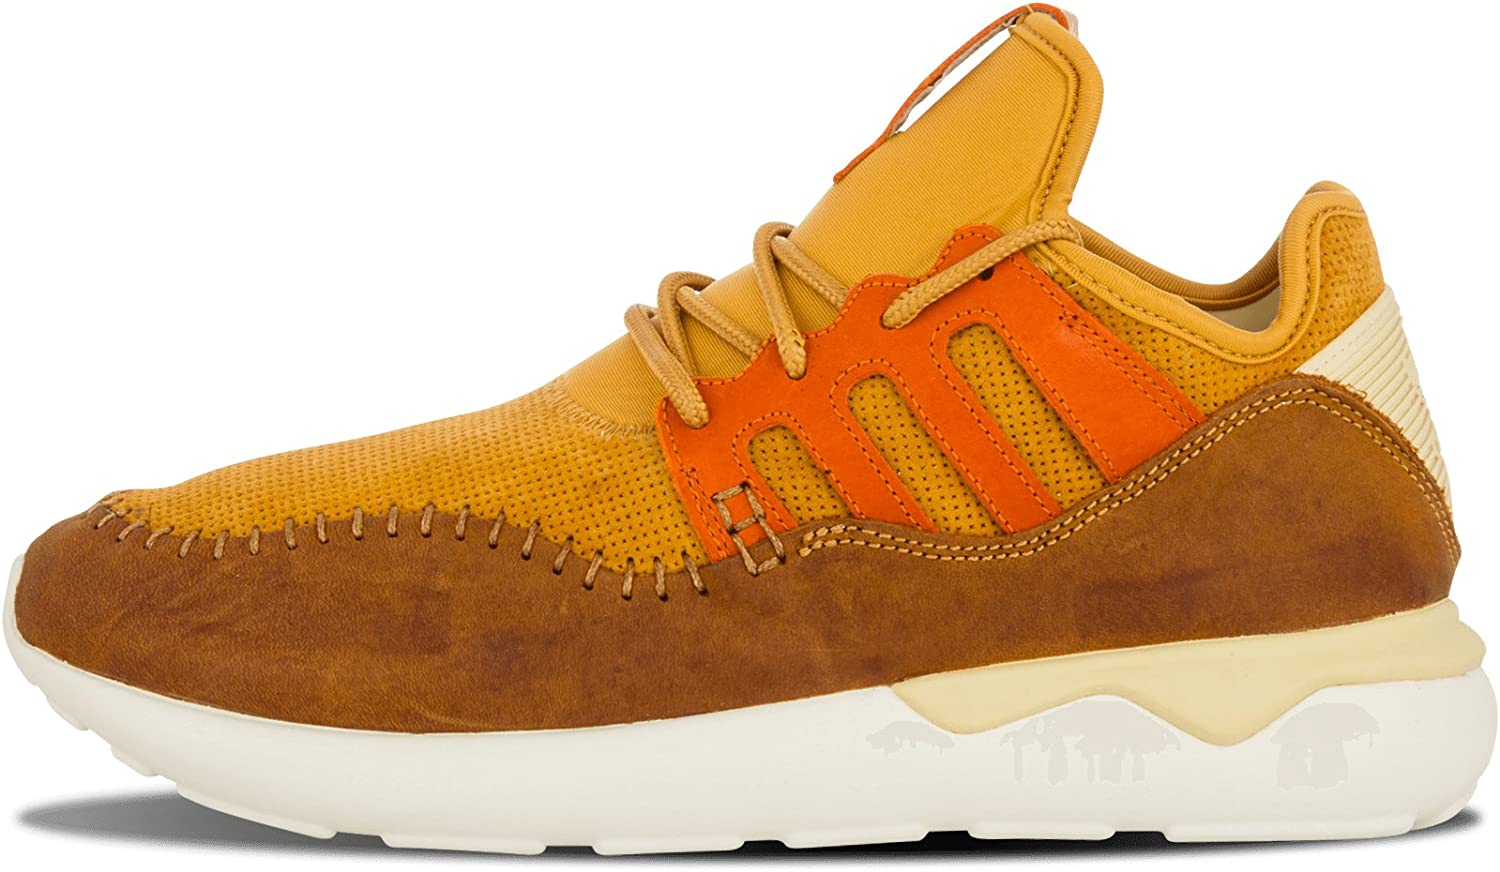 adidas Men s Originals Tubular Moc Runner Shoes Mesa B24689